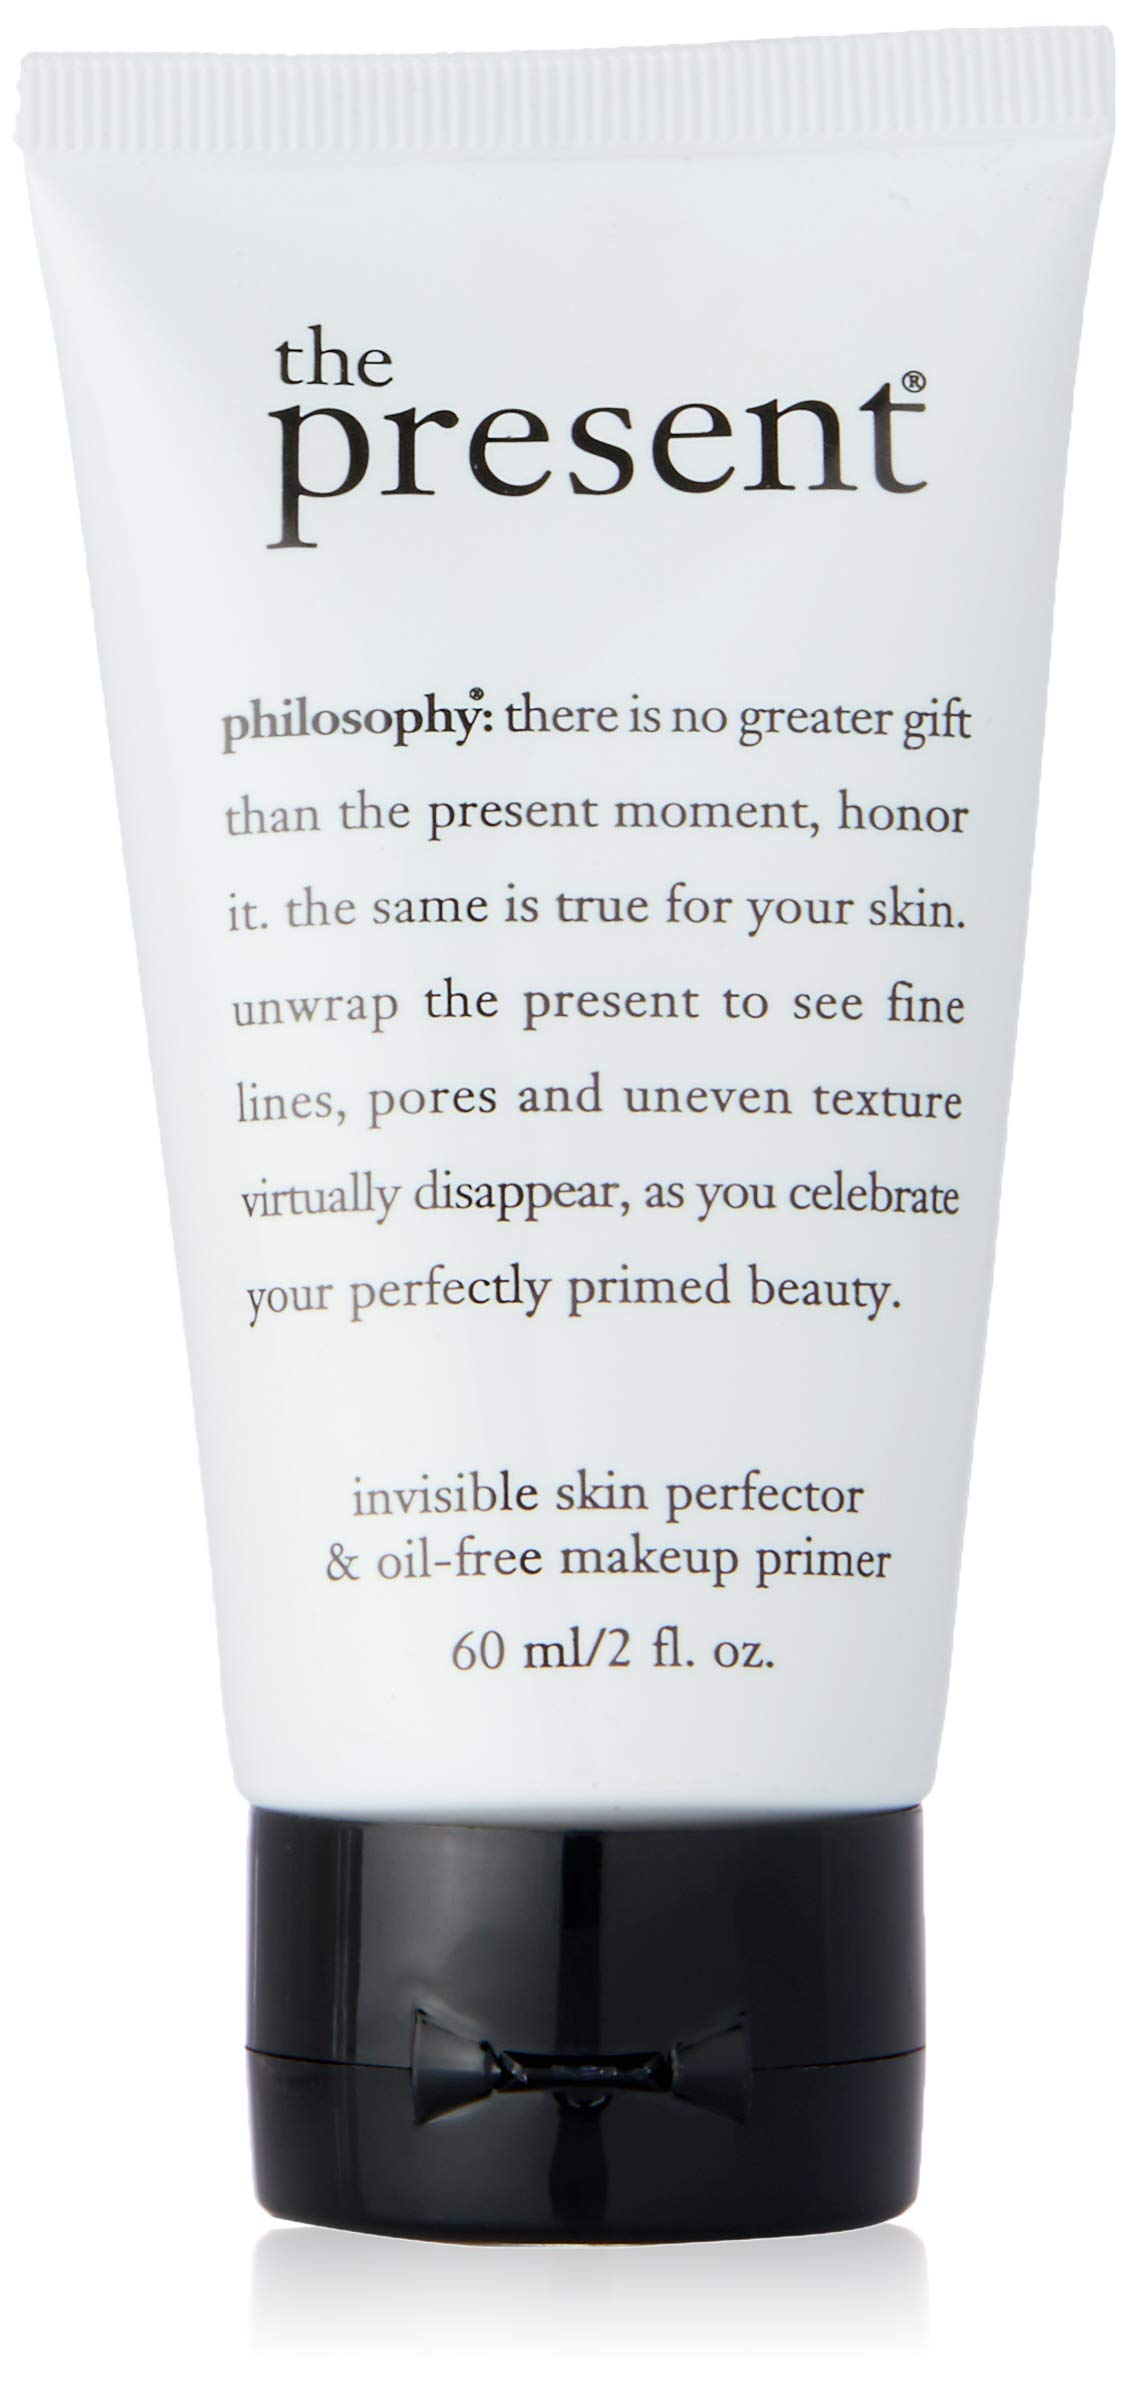 Philosophy The Present - Invisible Skin Perfector and Oil-free Makeup Primer - 2 oz by Philosophy